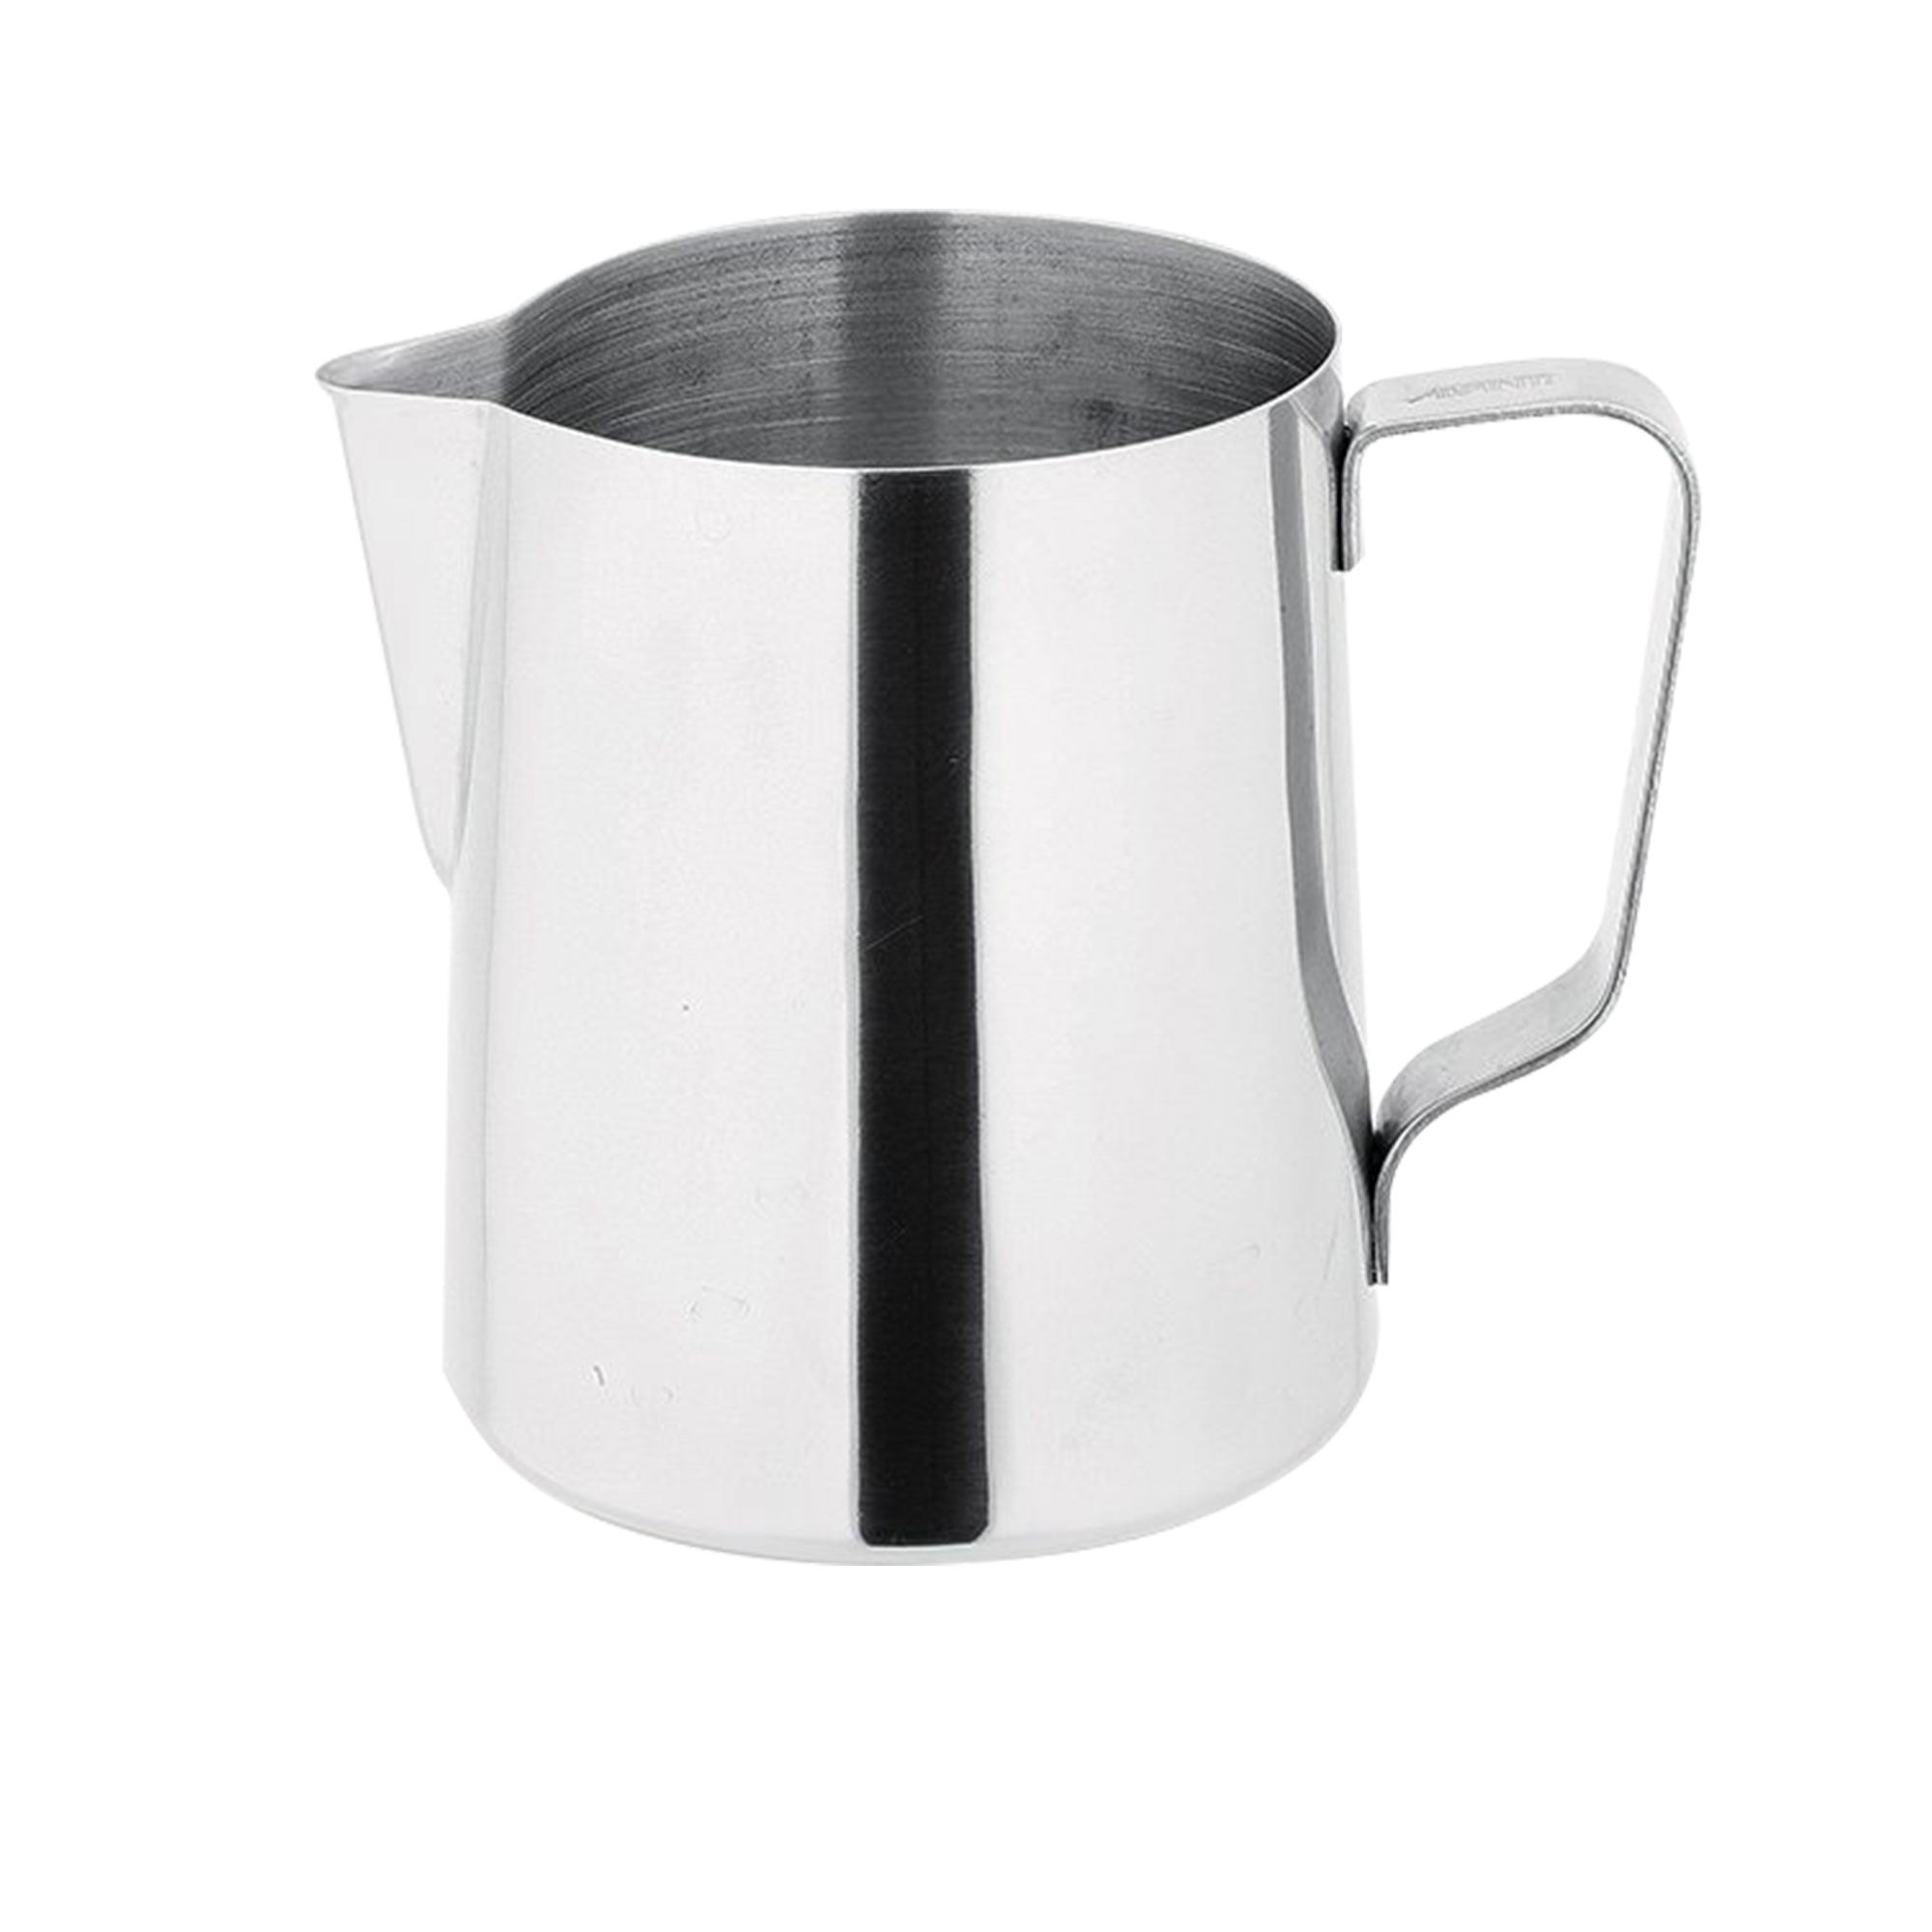 Avanti Milk Frothing Jug 600ml